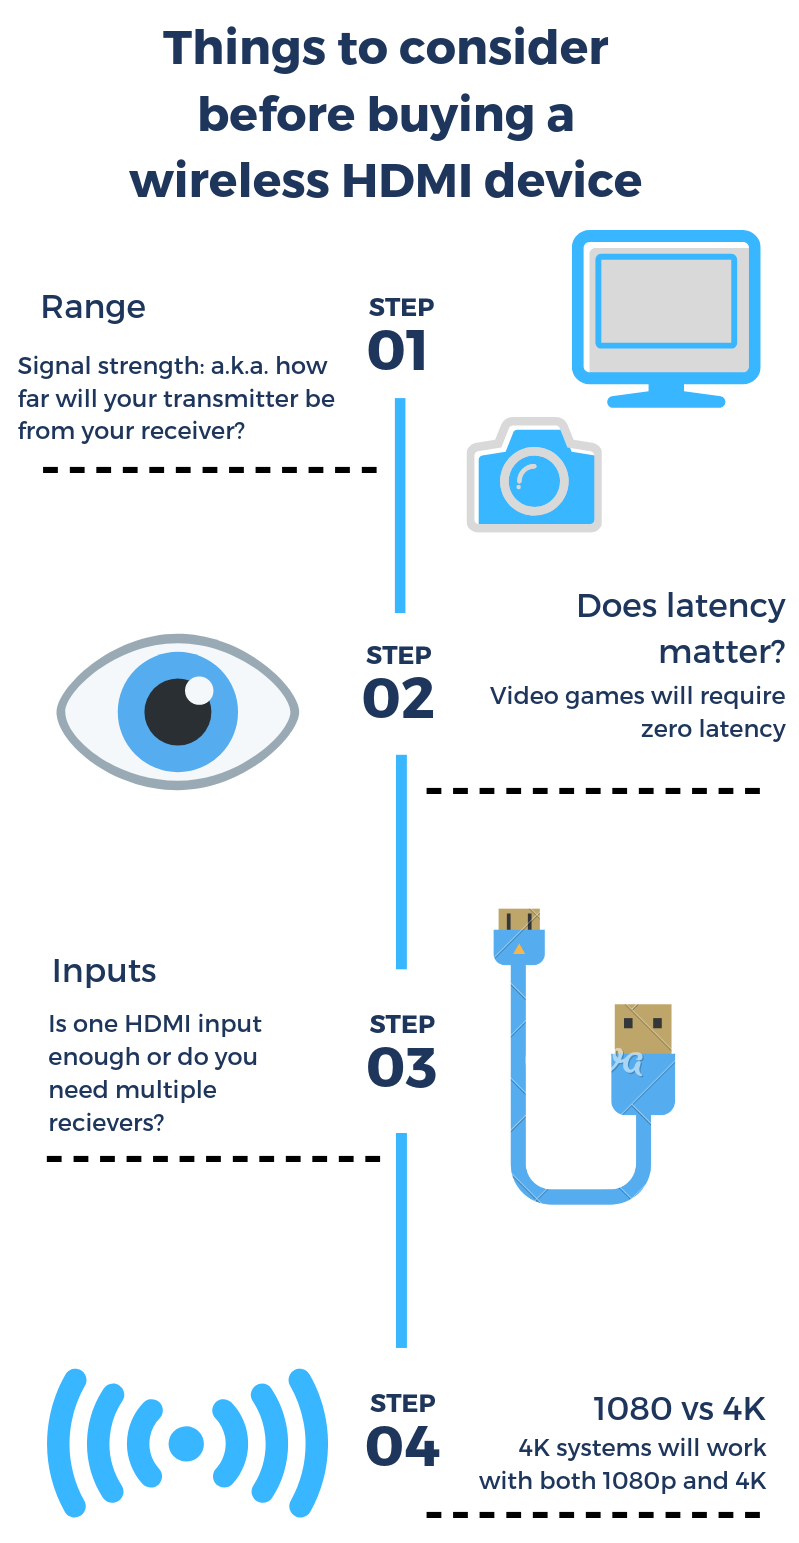 wireless HDMI guide infographic